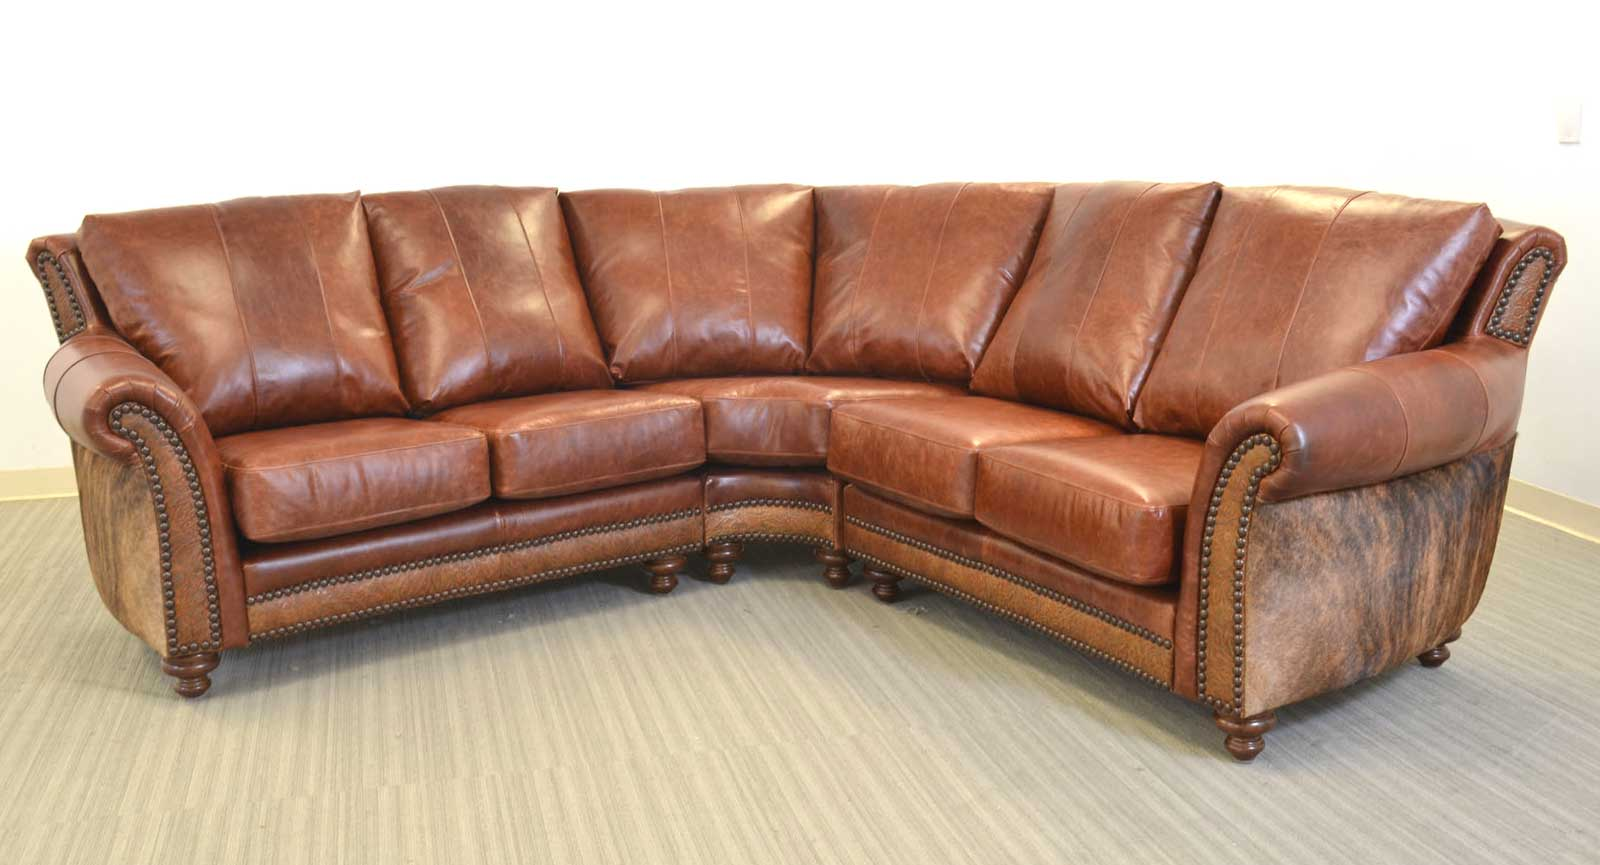 Highlander Sectional Sofa